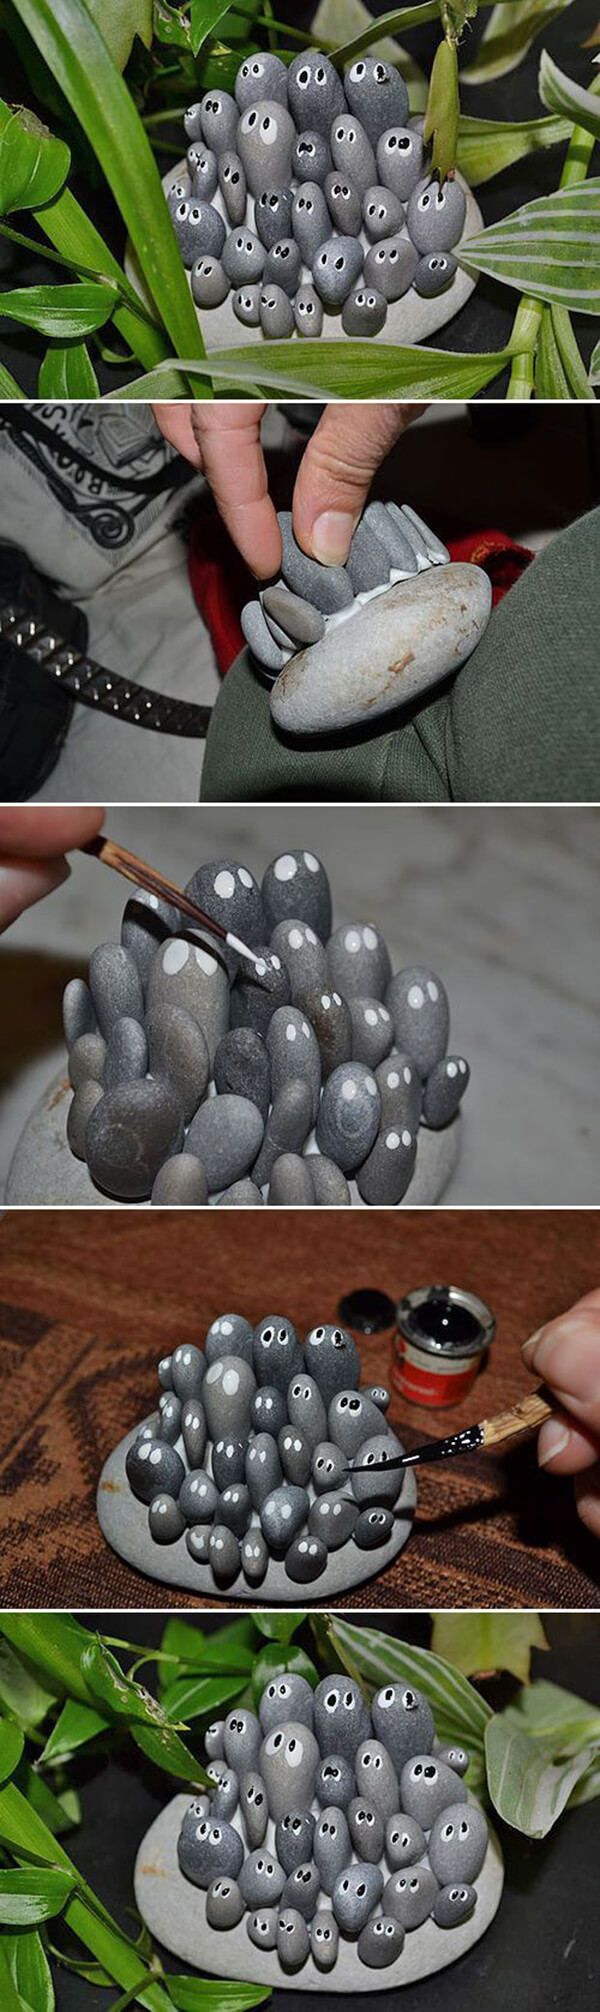 Cute Rock Family DIY Garden Project with Rocks